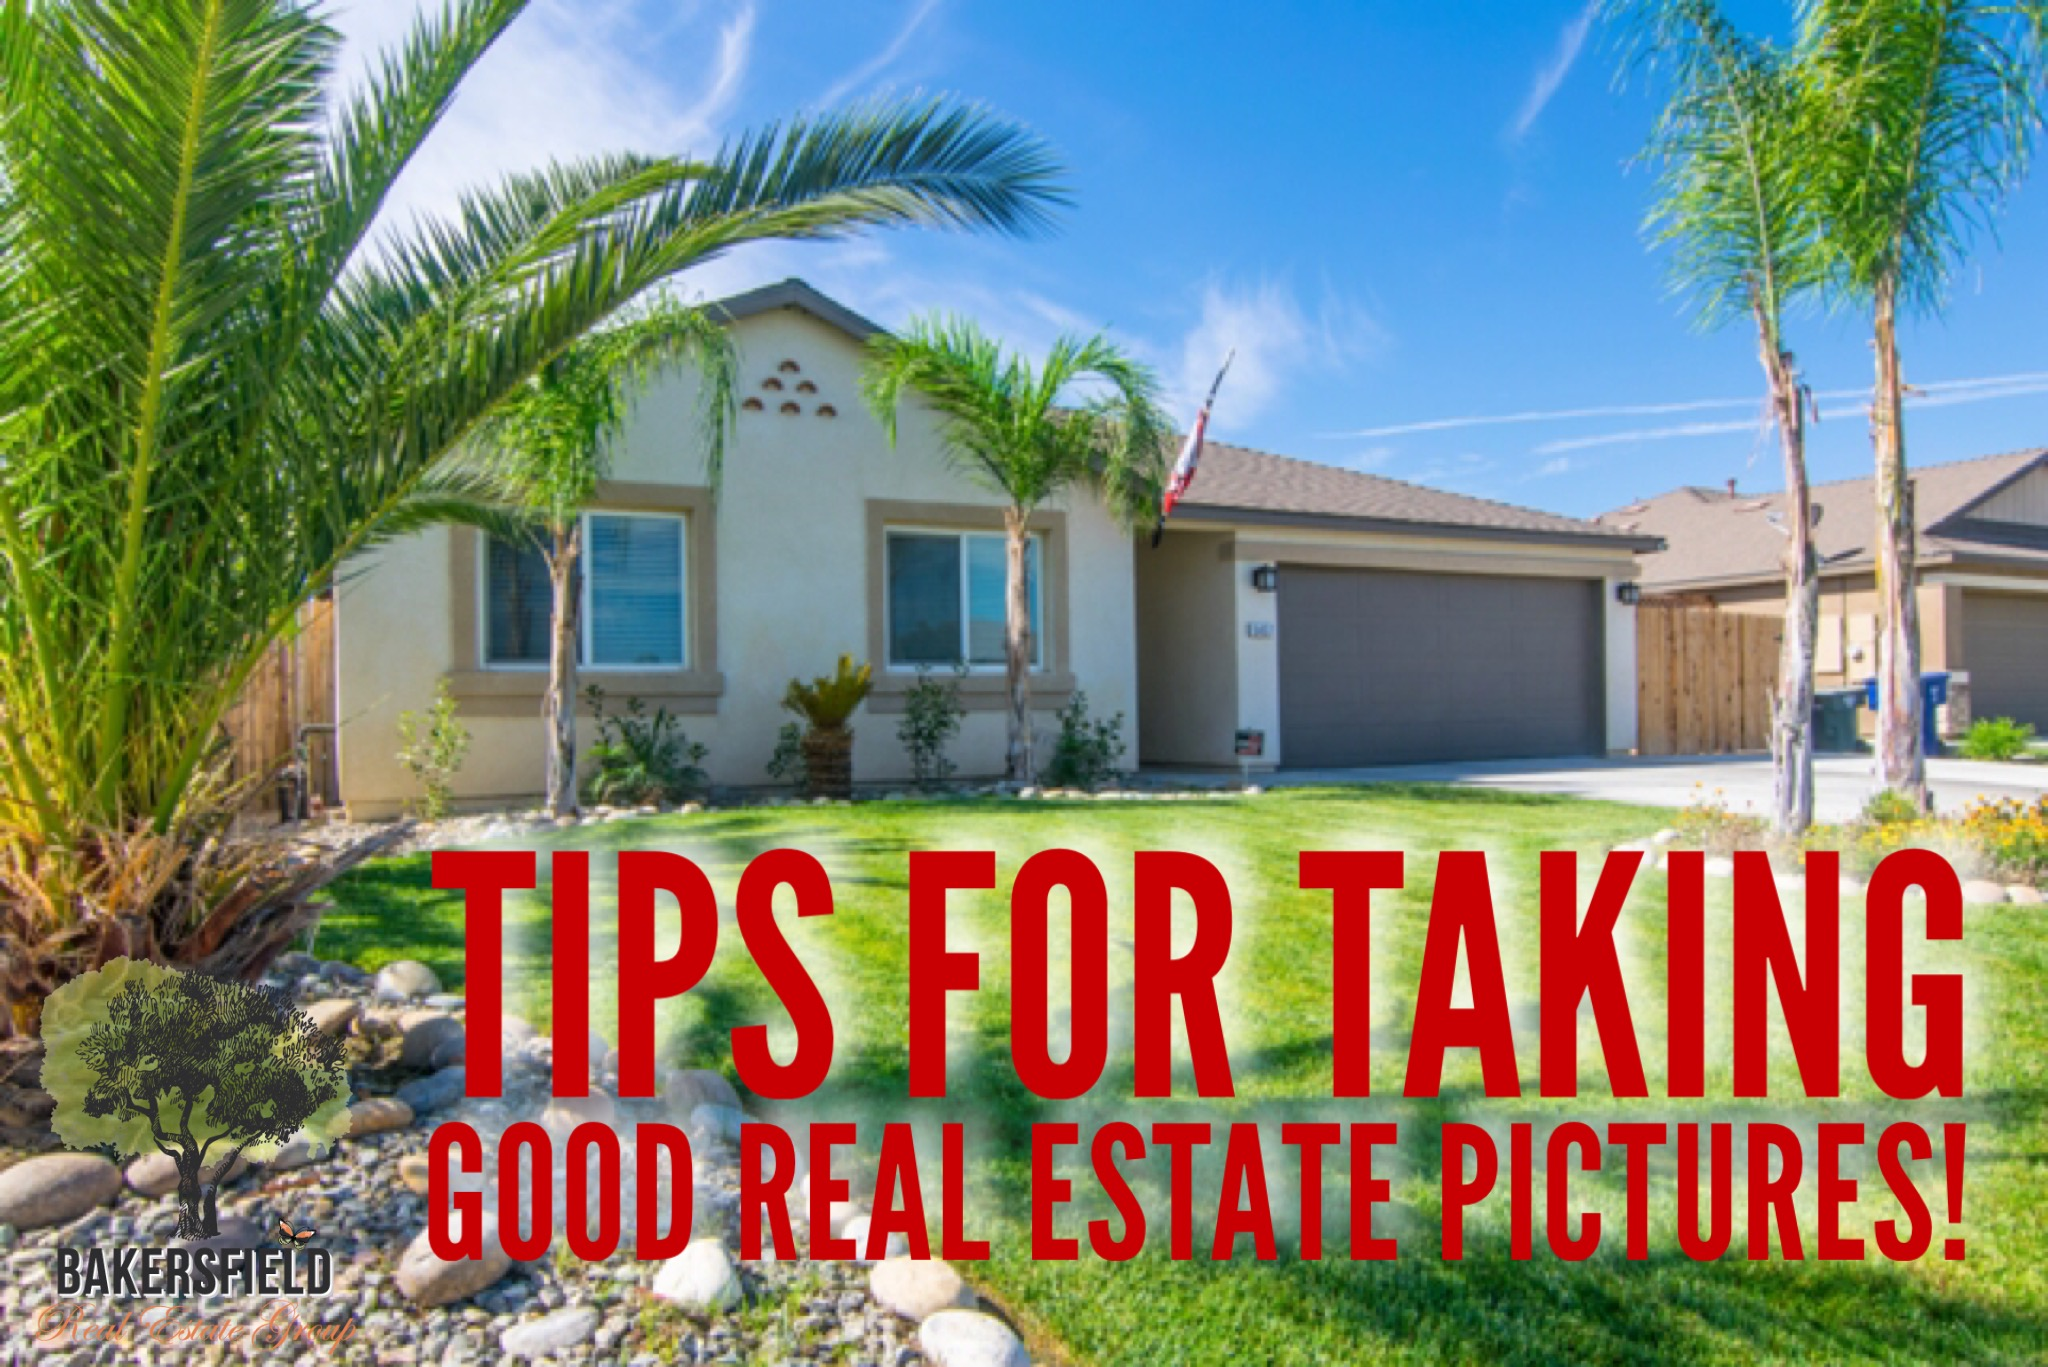 Professional Real Estate Pictures - Linda Banales- 661.368.3770